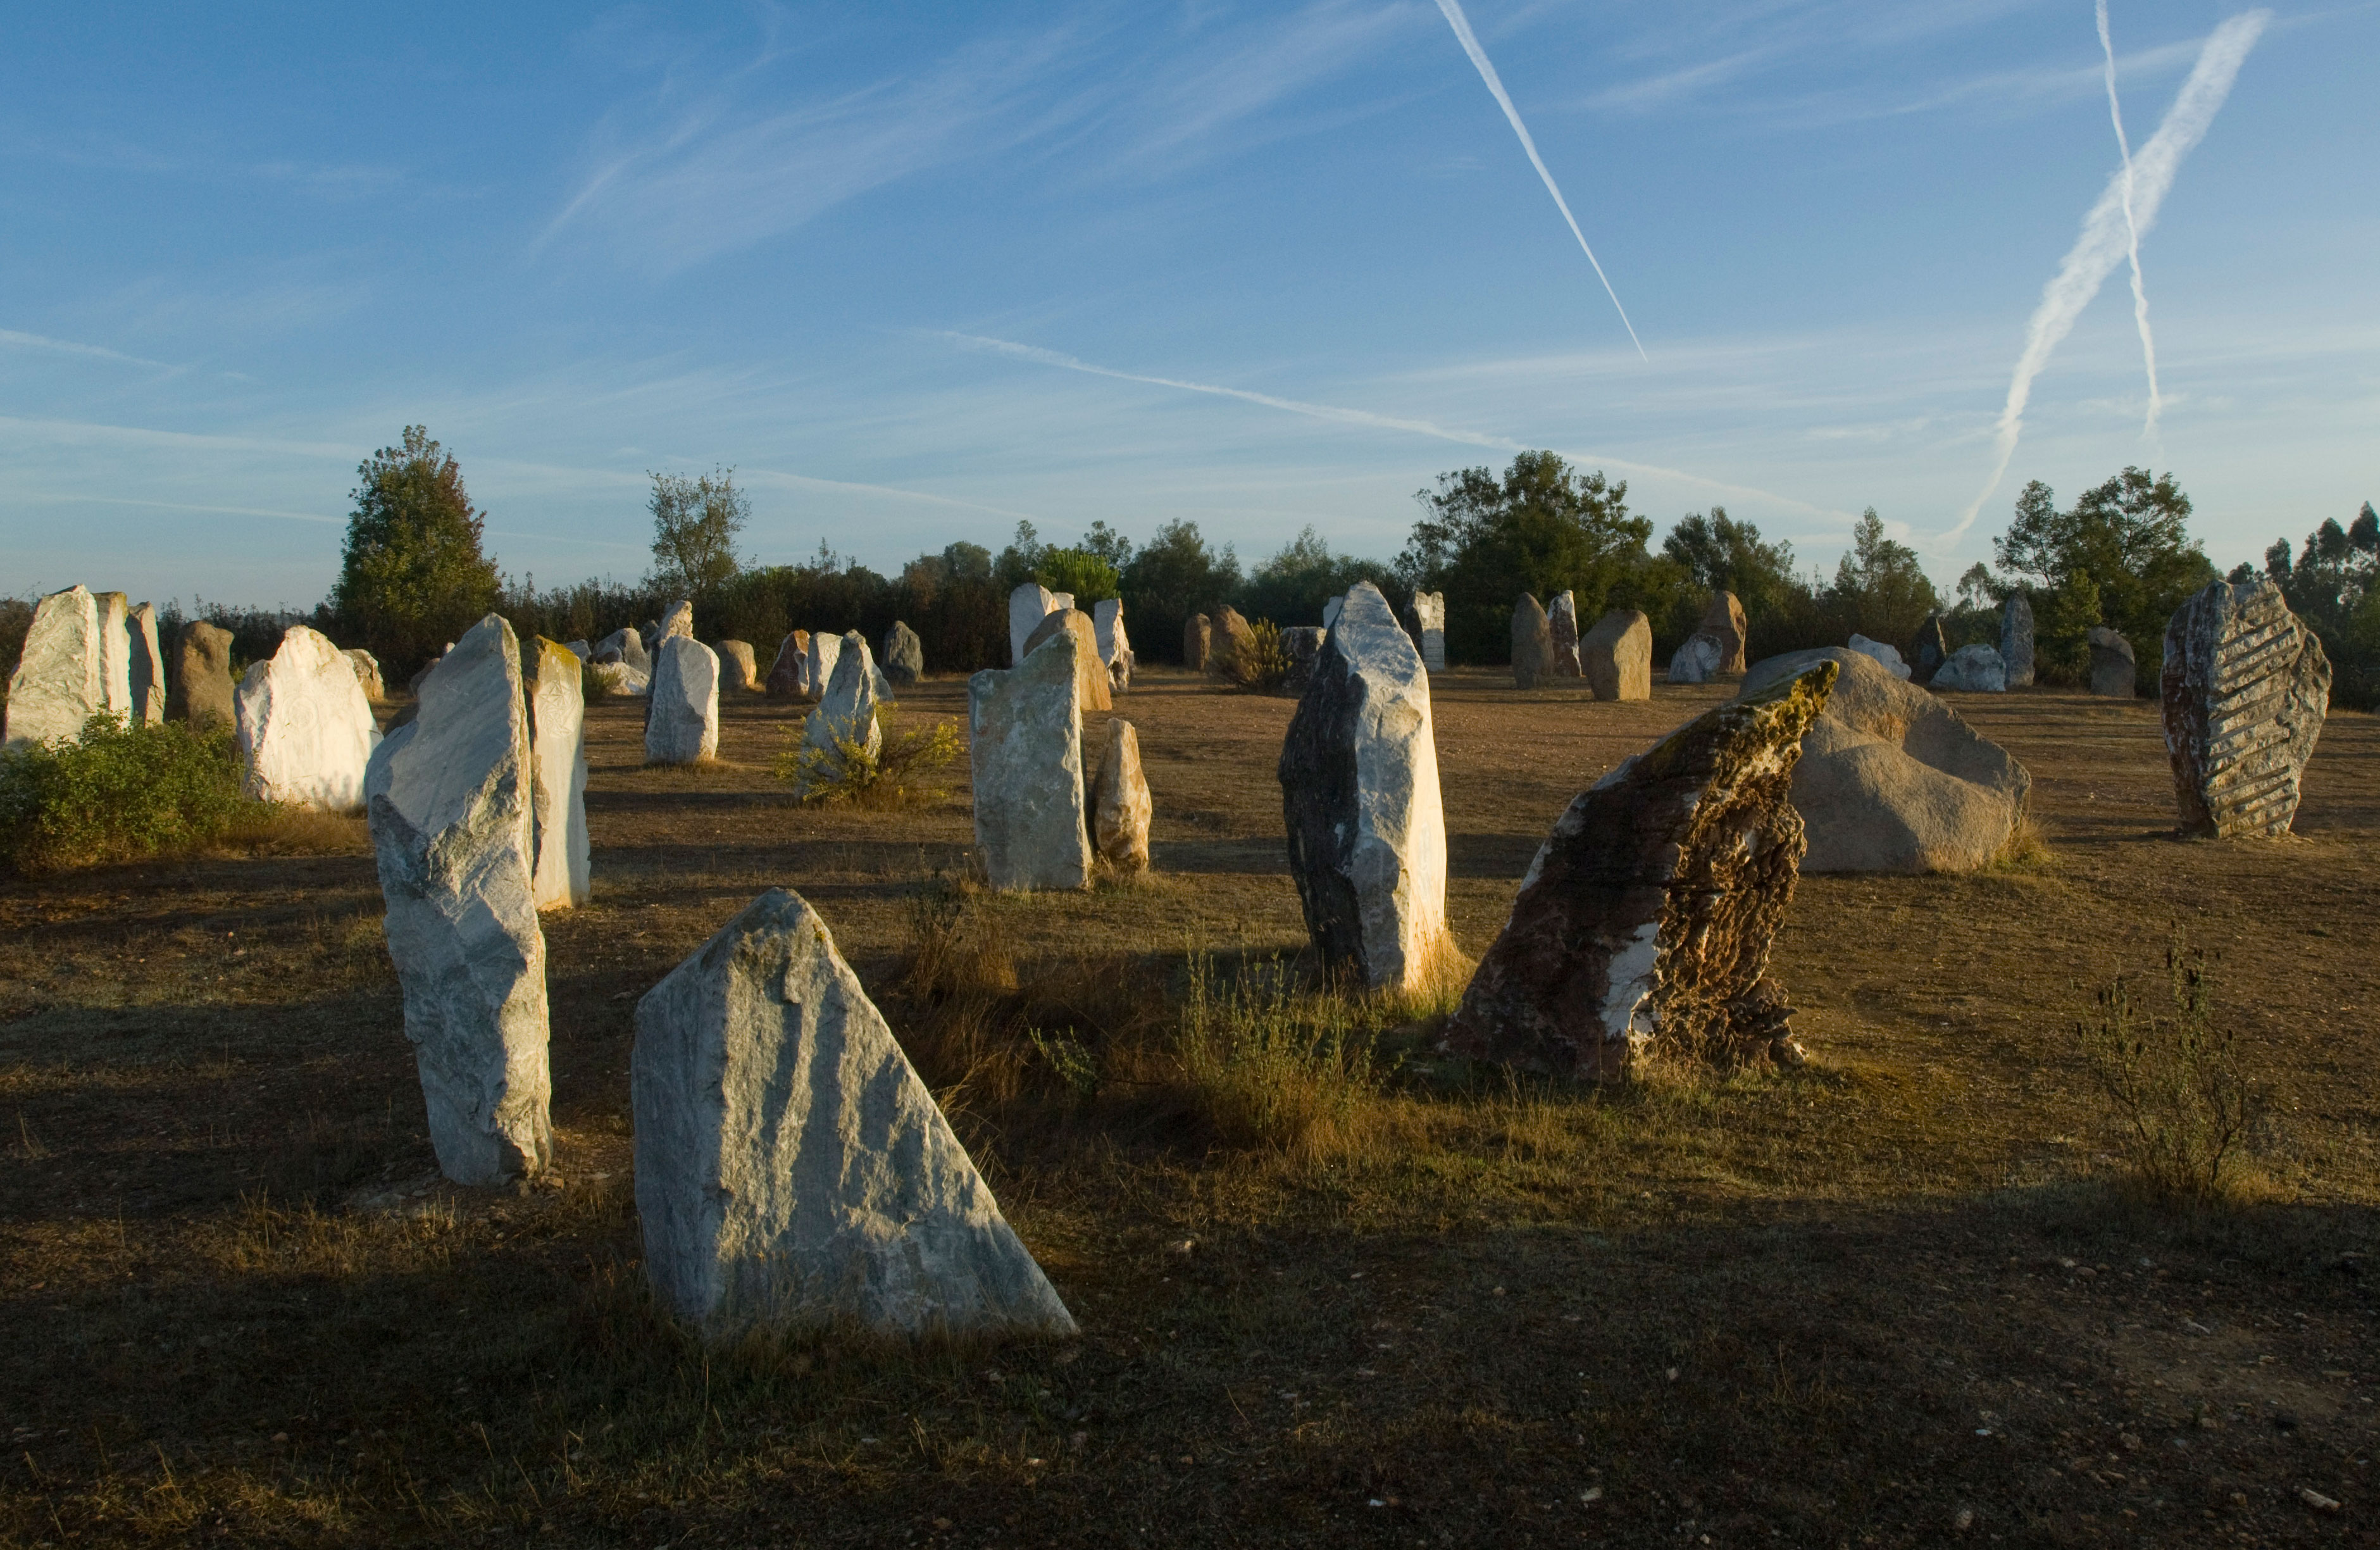 View of the Stone Circle